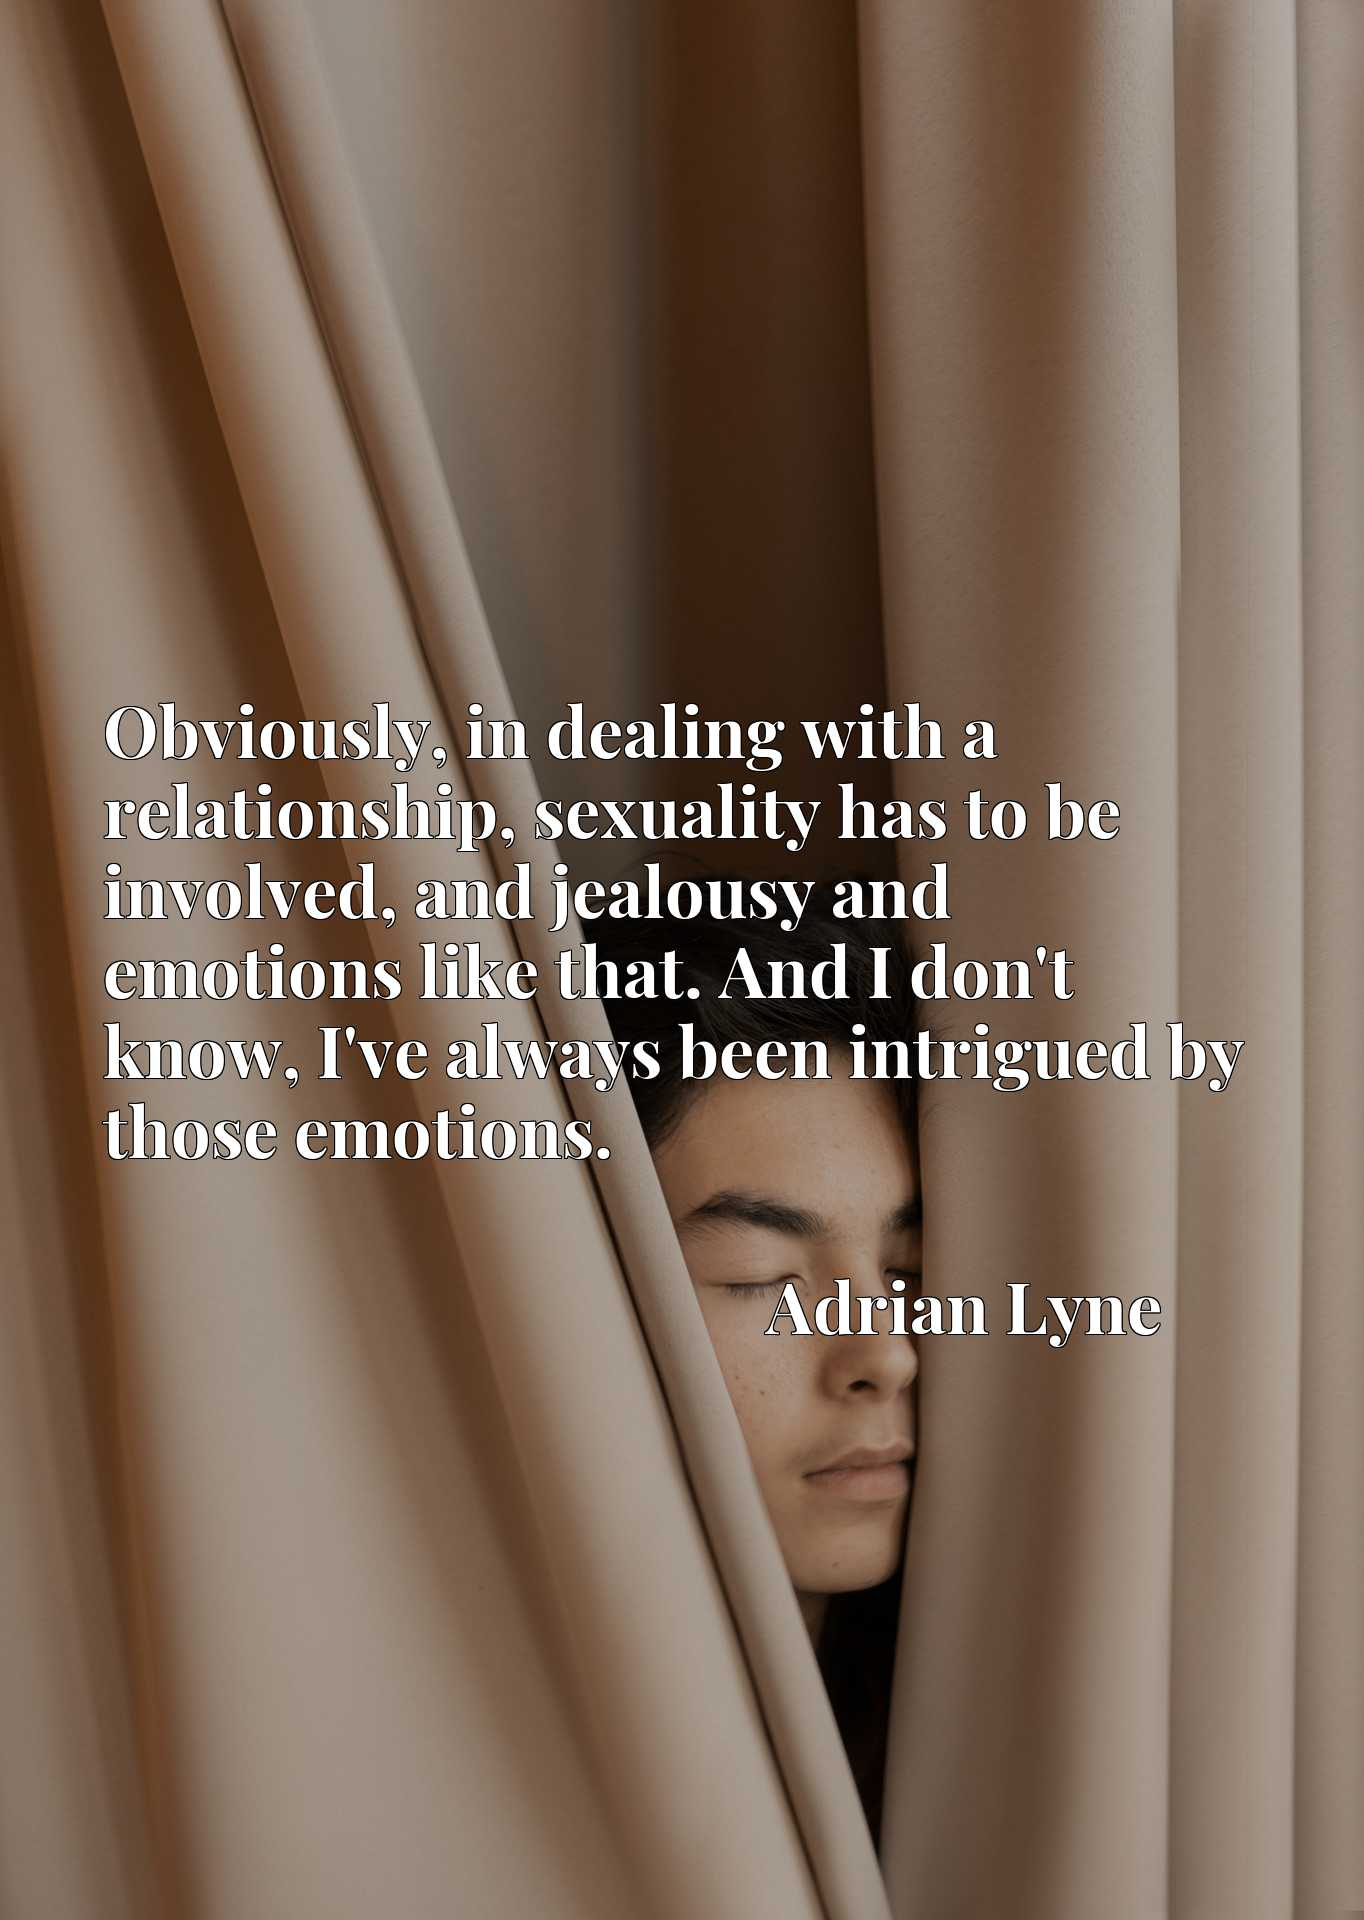 Obviously, in dealing with a relationship, sexuality has to be involved, and jealousy and emotions like that. And I don't know, I've always been intrigued by those emotions.